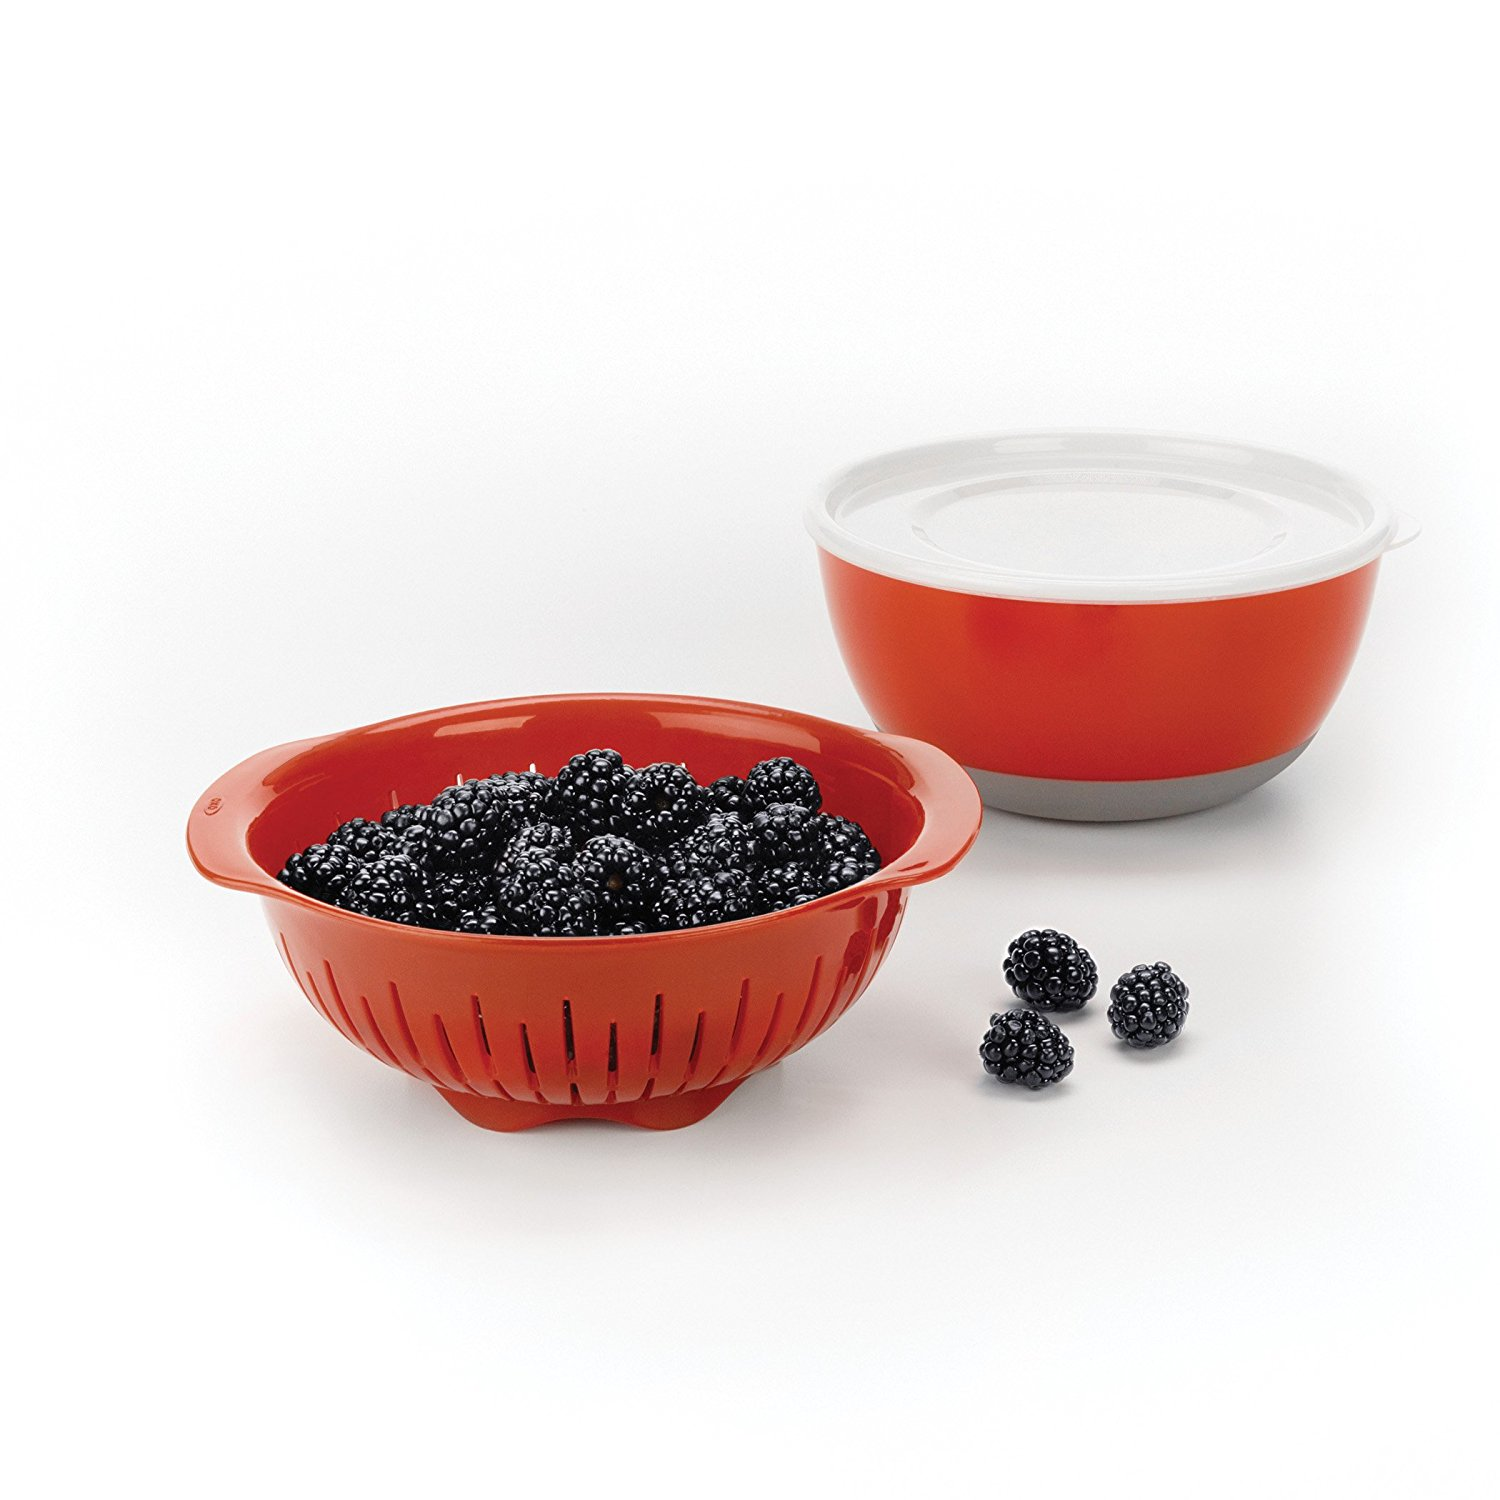 3 Piece Berry Washing Bowl, Colander, Ship from USA,Brand OXO Good Grips by